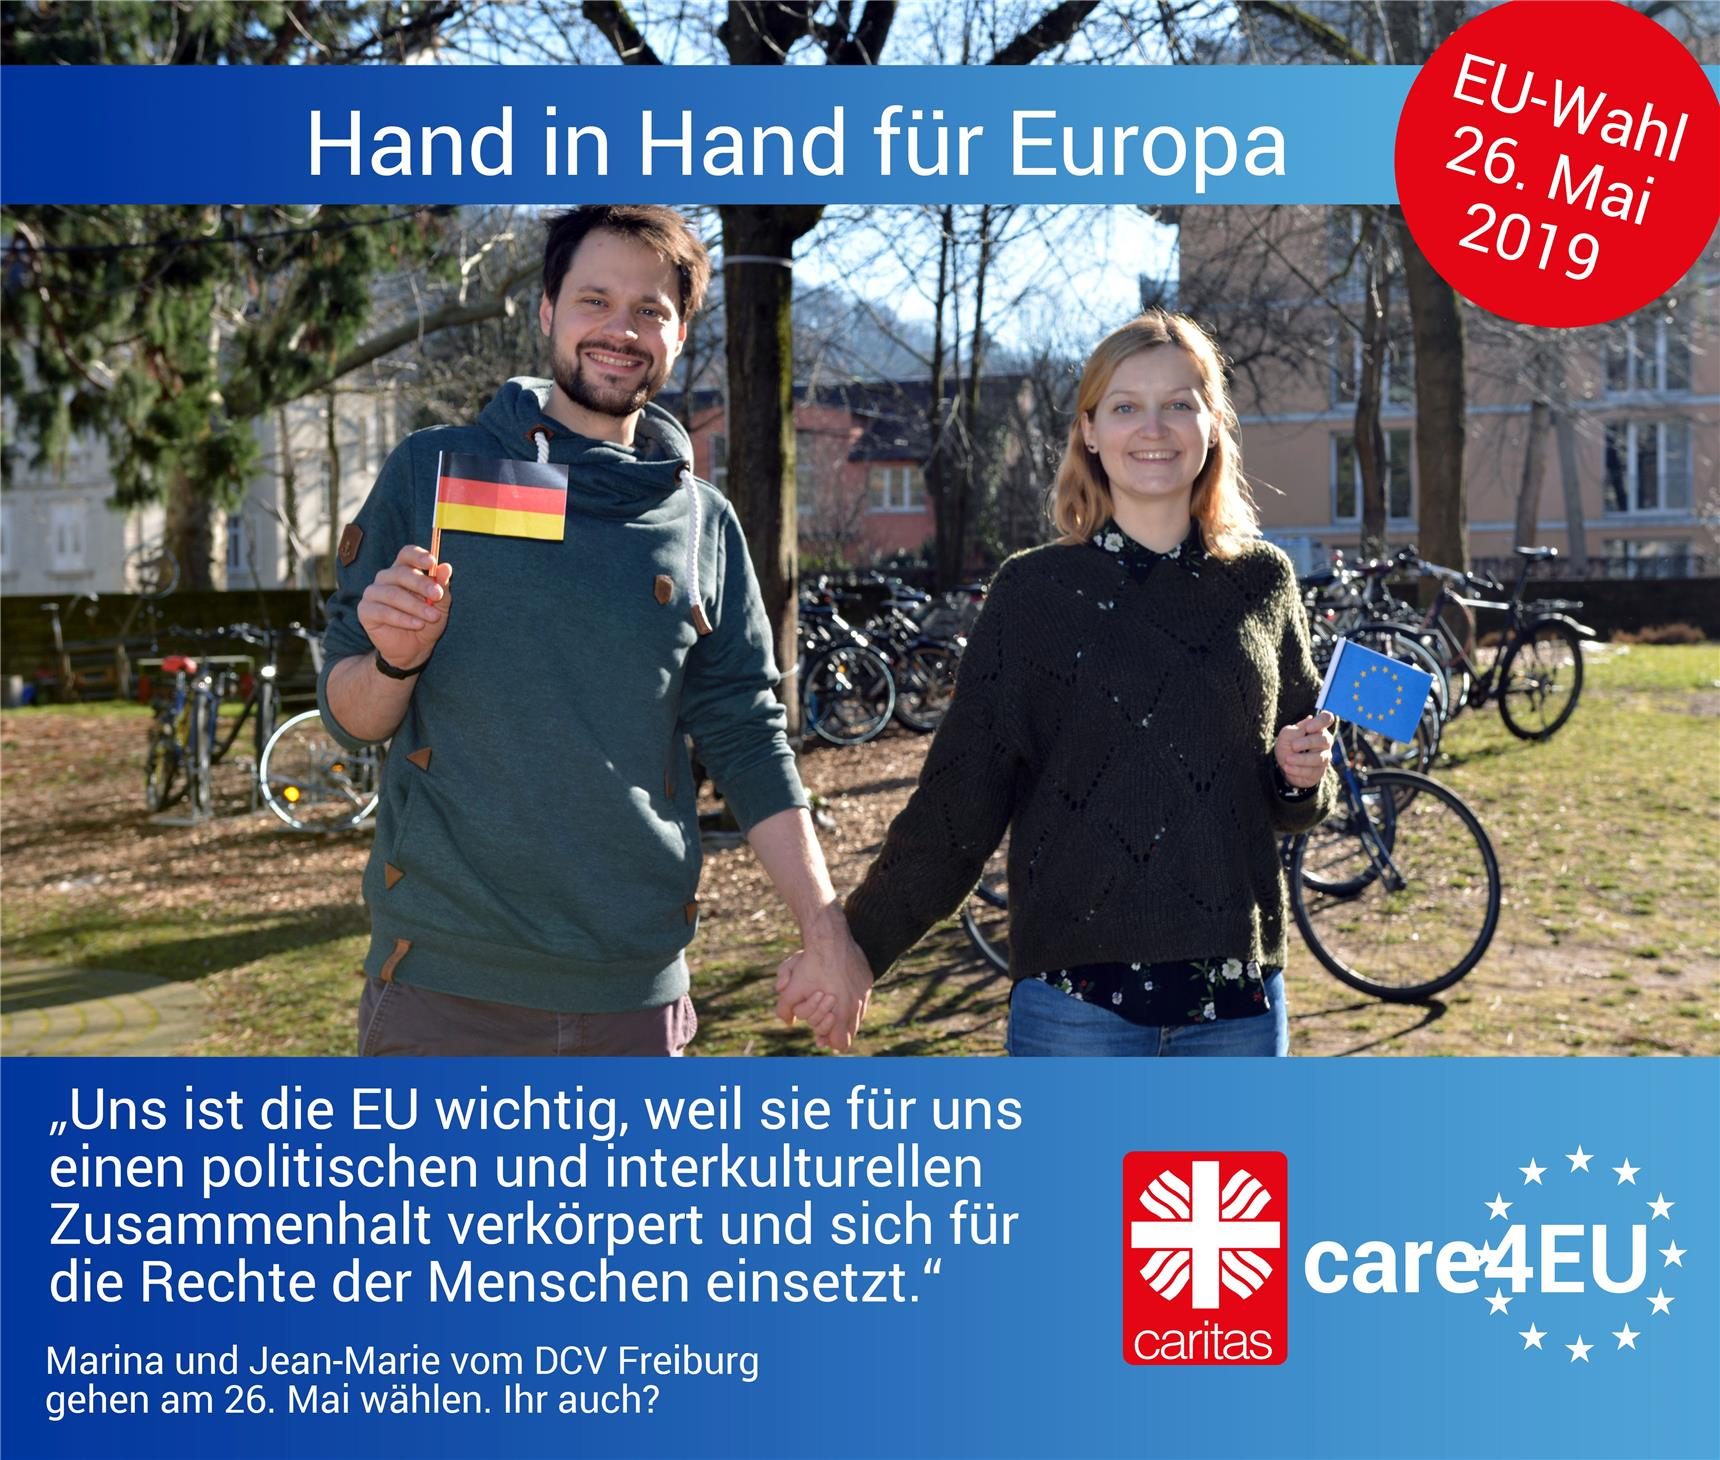 care4EU Fotoaktion-Beispiel mit Statement